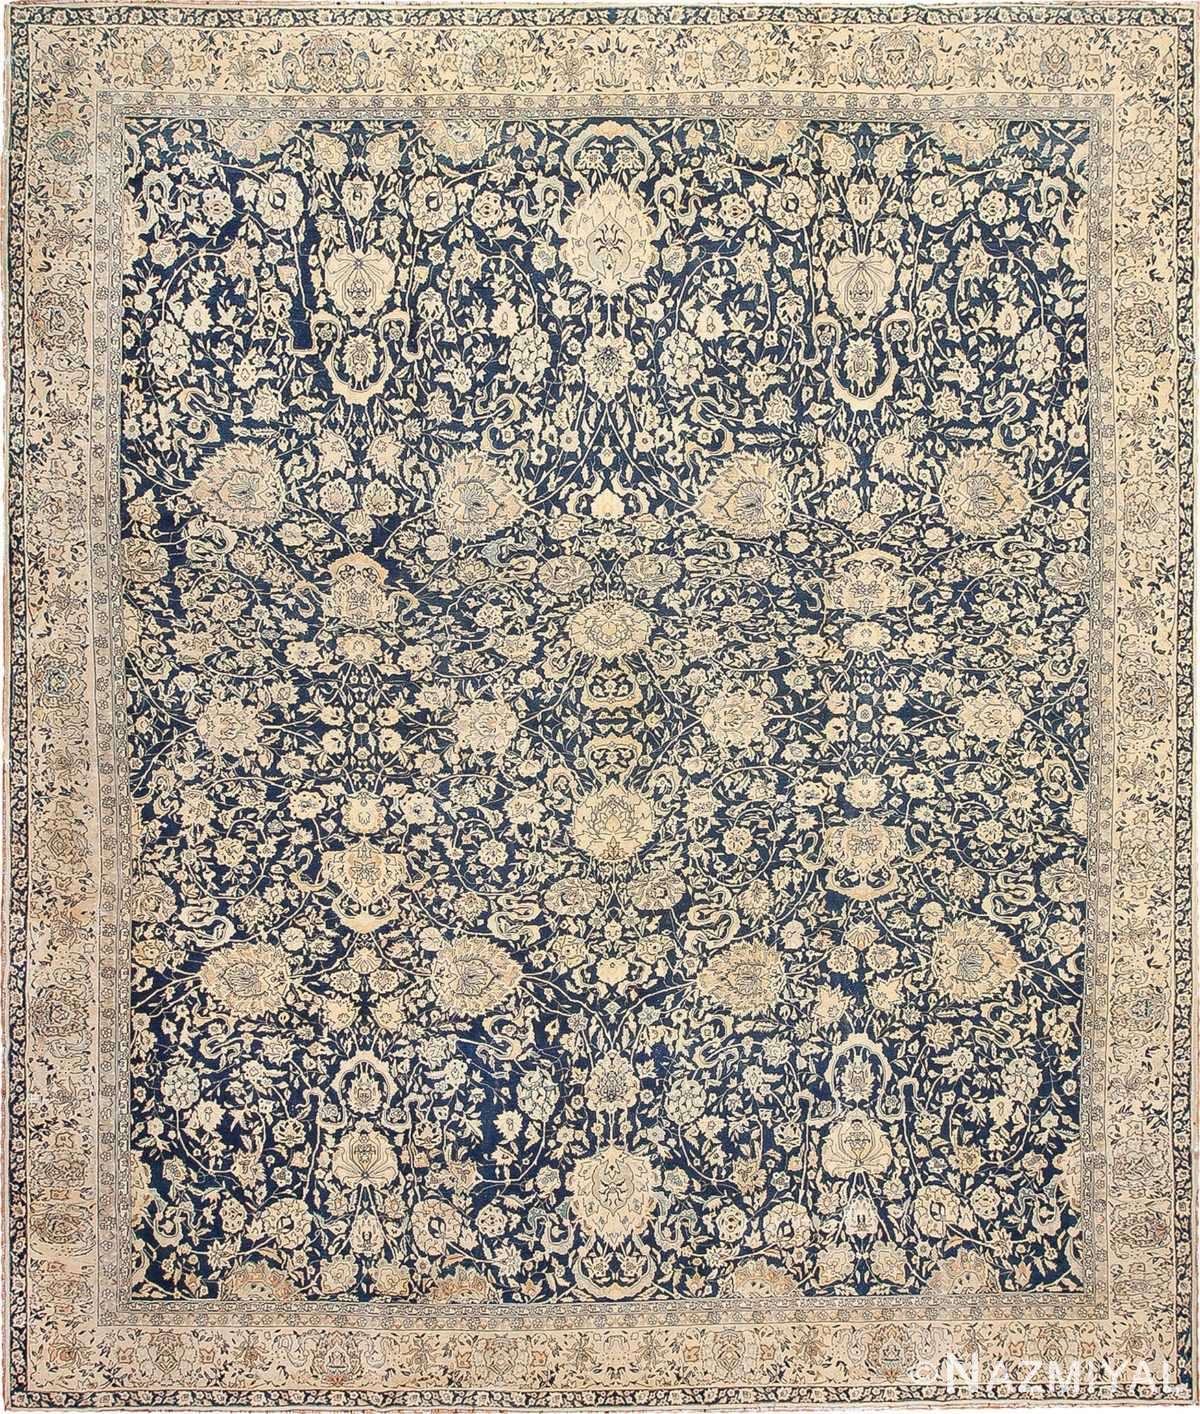 Antique Blue Indian Agra Rug 49171 Nazmiyal